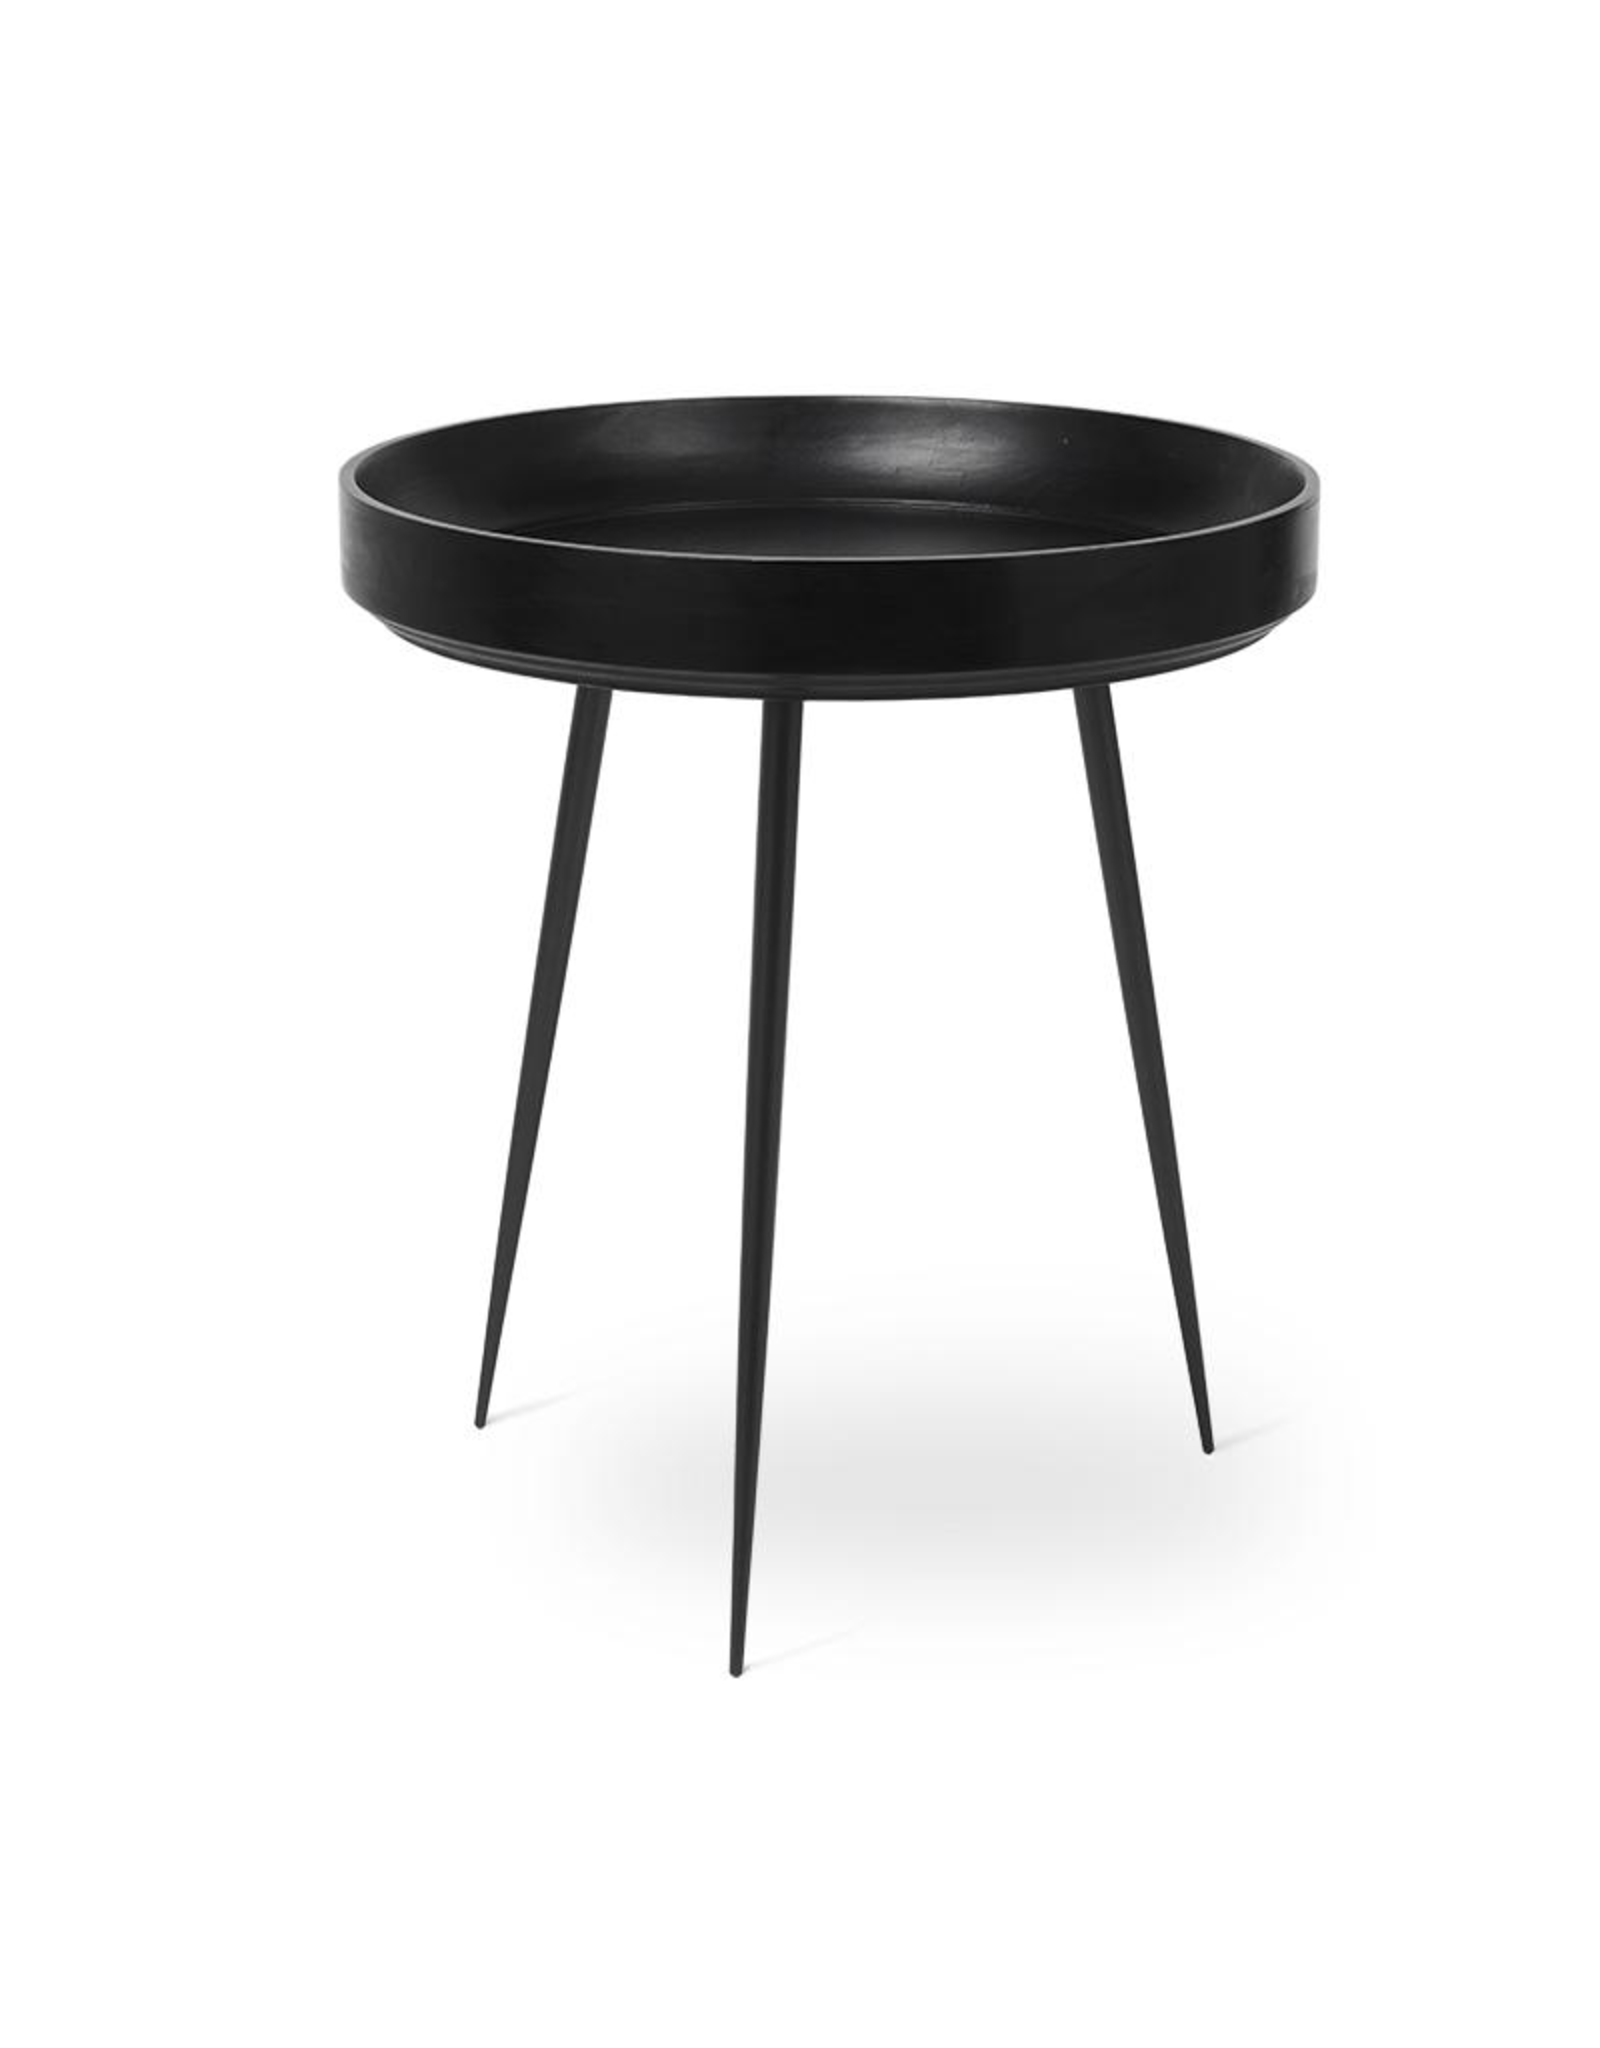 MATER MANGO BOWL TABLE IN BLACK STAIN FINISHED MANGO WOOD